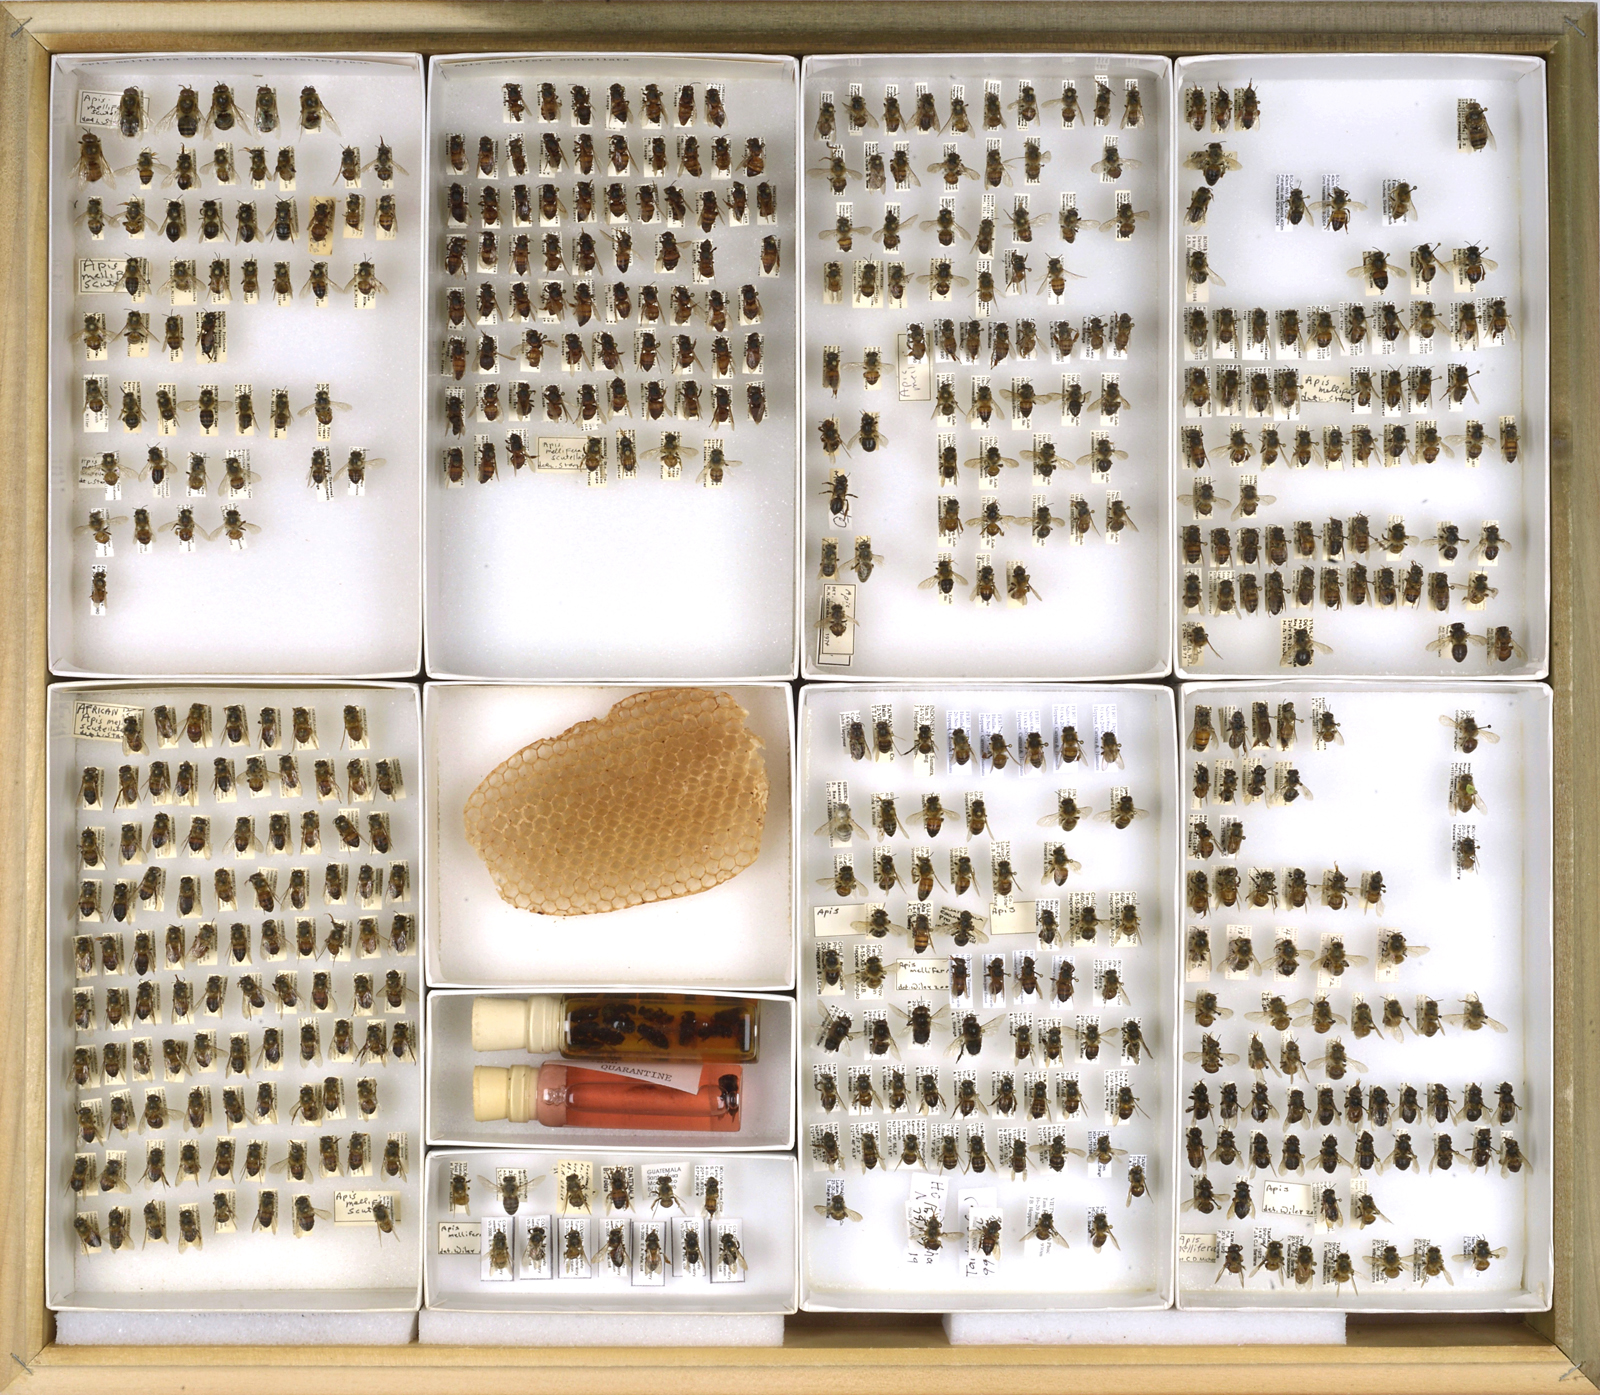 Bee Collection, Apis mellifera scutellata, African Bees